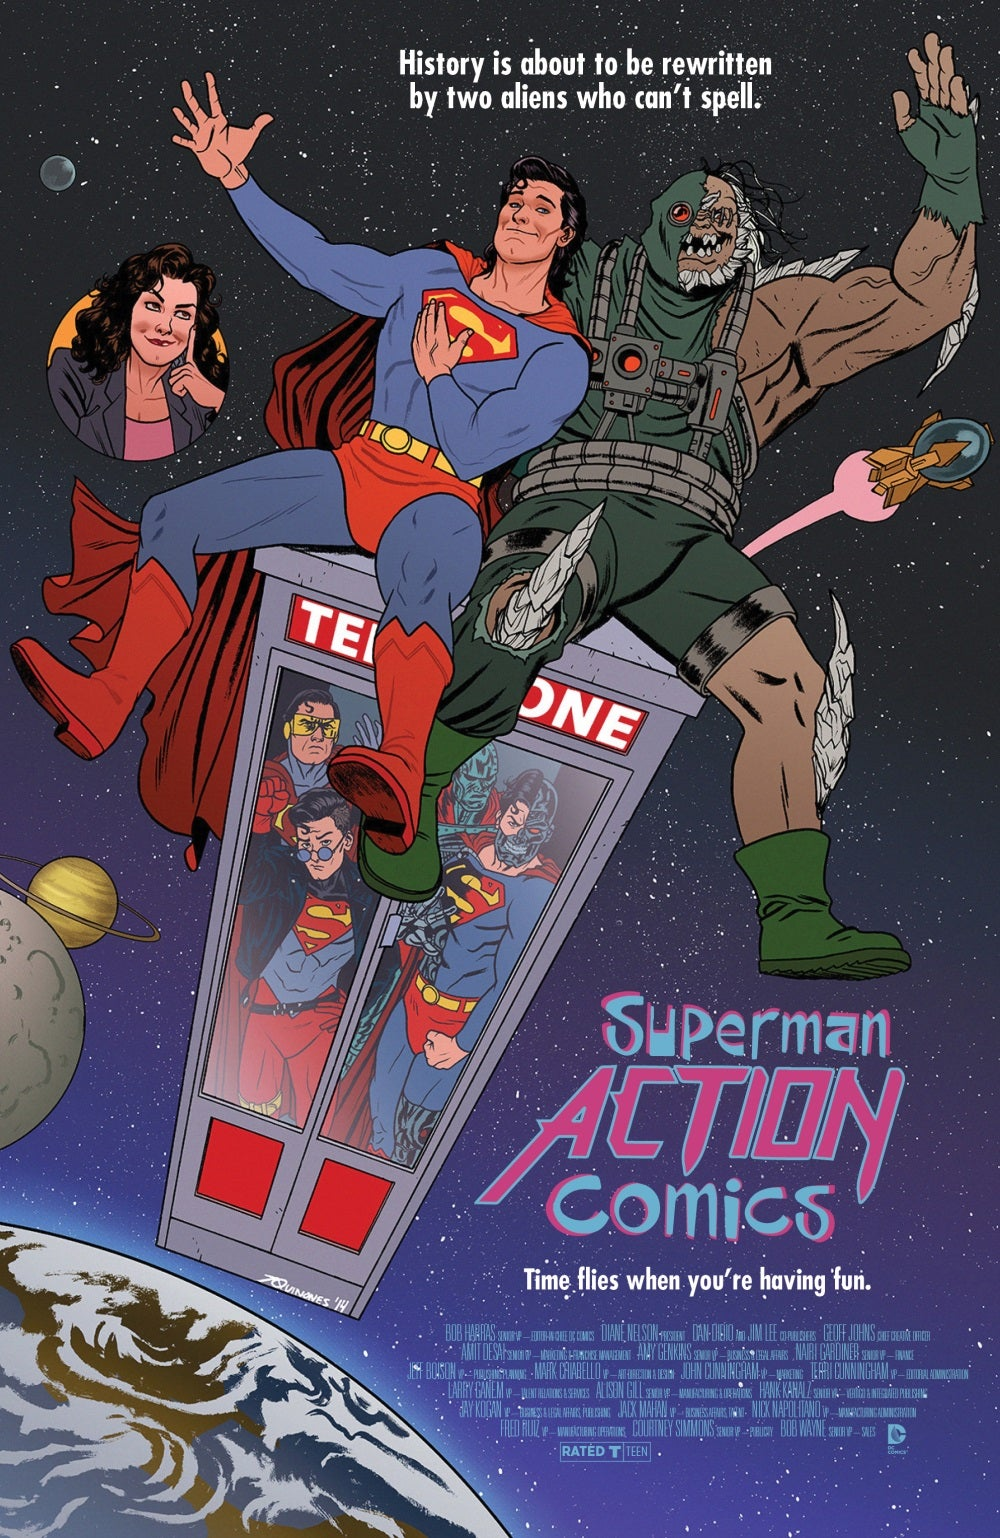 Movie Themed DC Variant Covers Launch In March